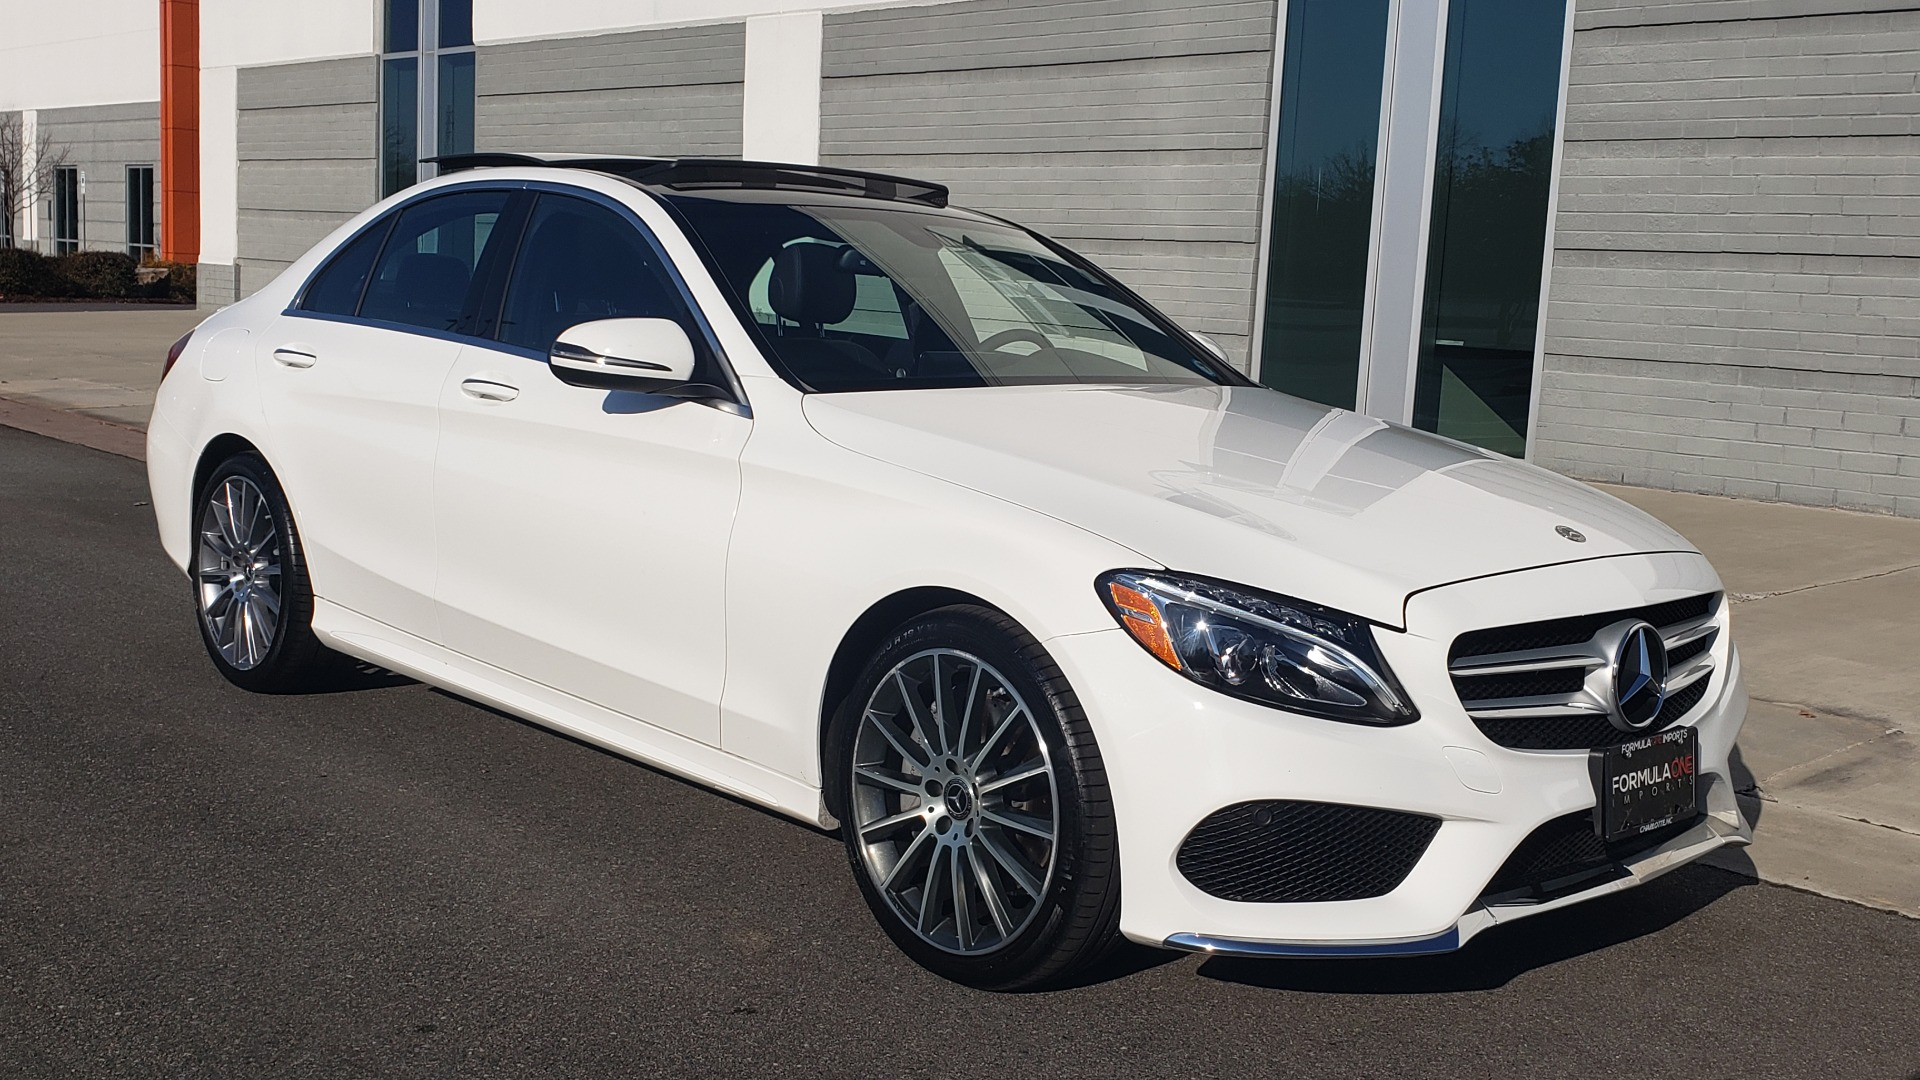 Used 2018 Mercedes-Benz C-Class C 300 PREMIUM / NAV / PANO-ROOF / AMG LINE / MULTIMEDIA for sale $28,235 at Formula Imports in Charlotte NC 28227 10